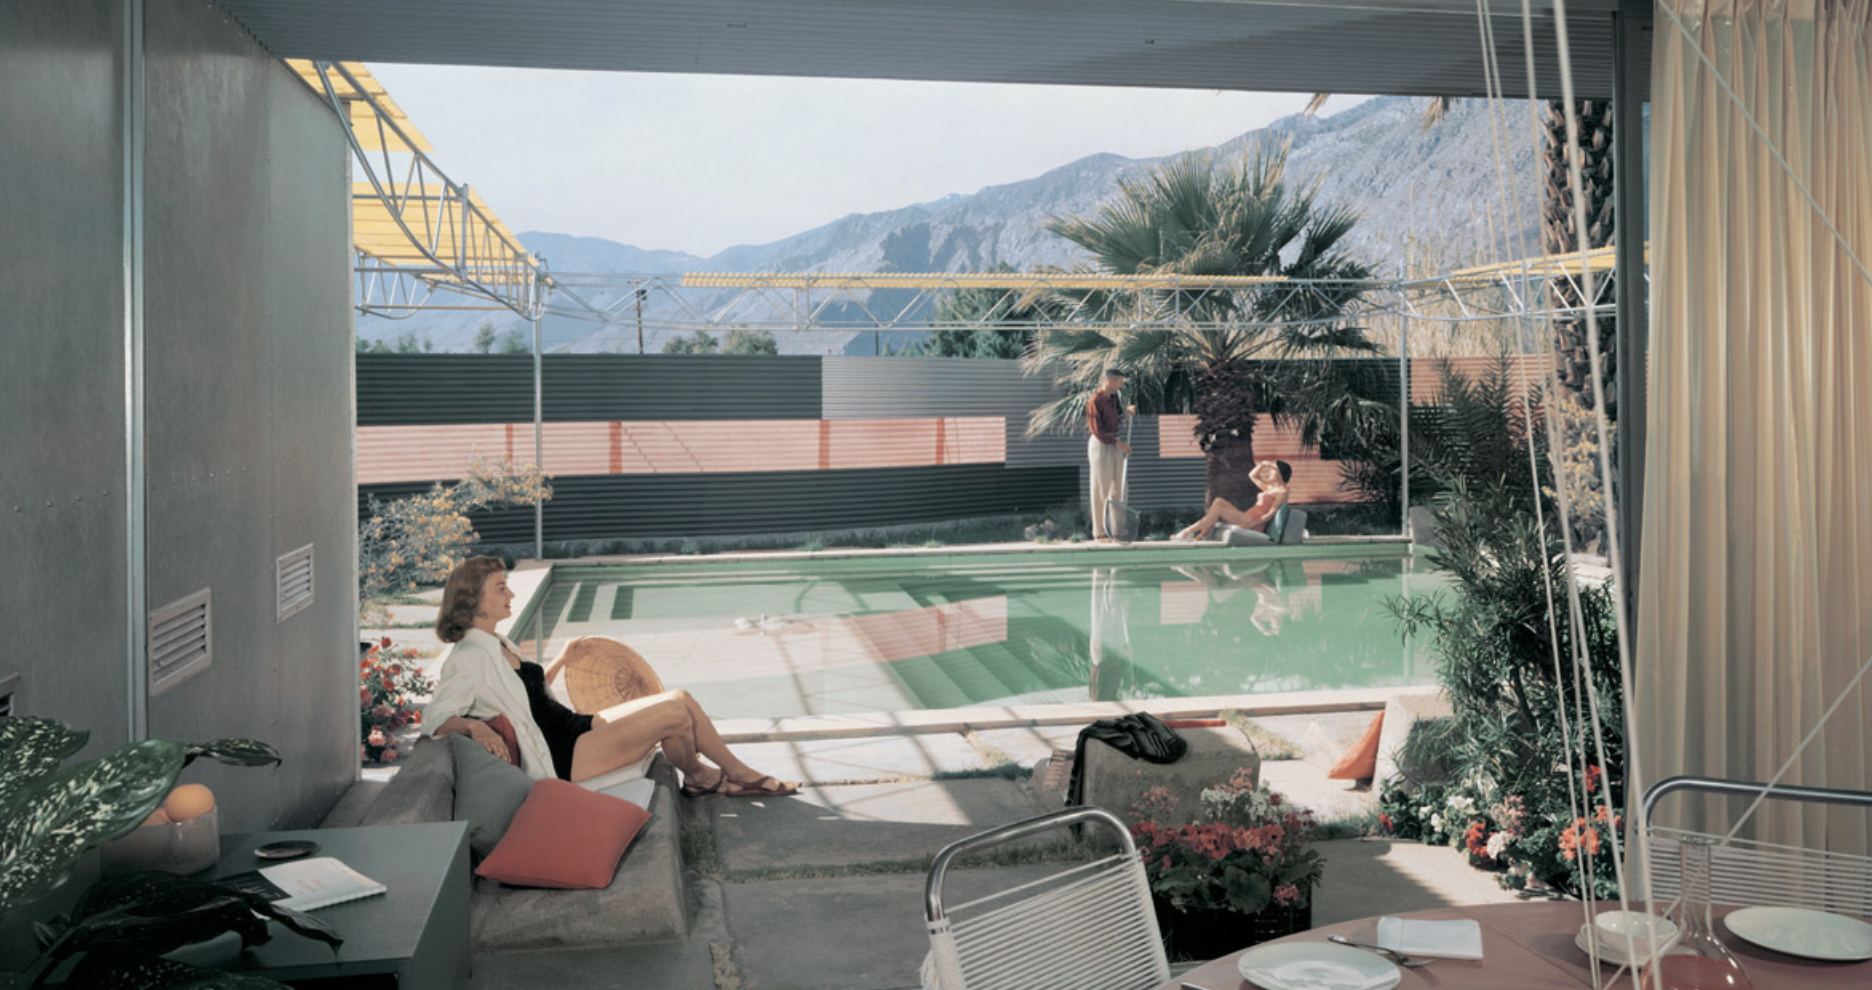 Frey Residence by Albert Frey, Palm Springs, California, photographed in 1956 by Julius Shulman